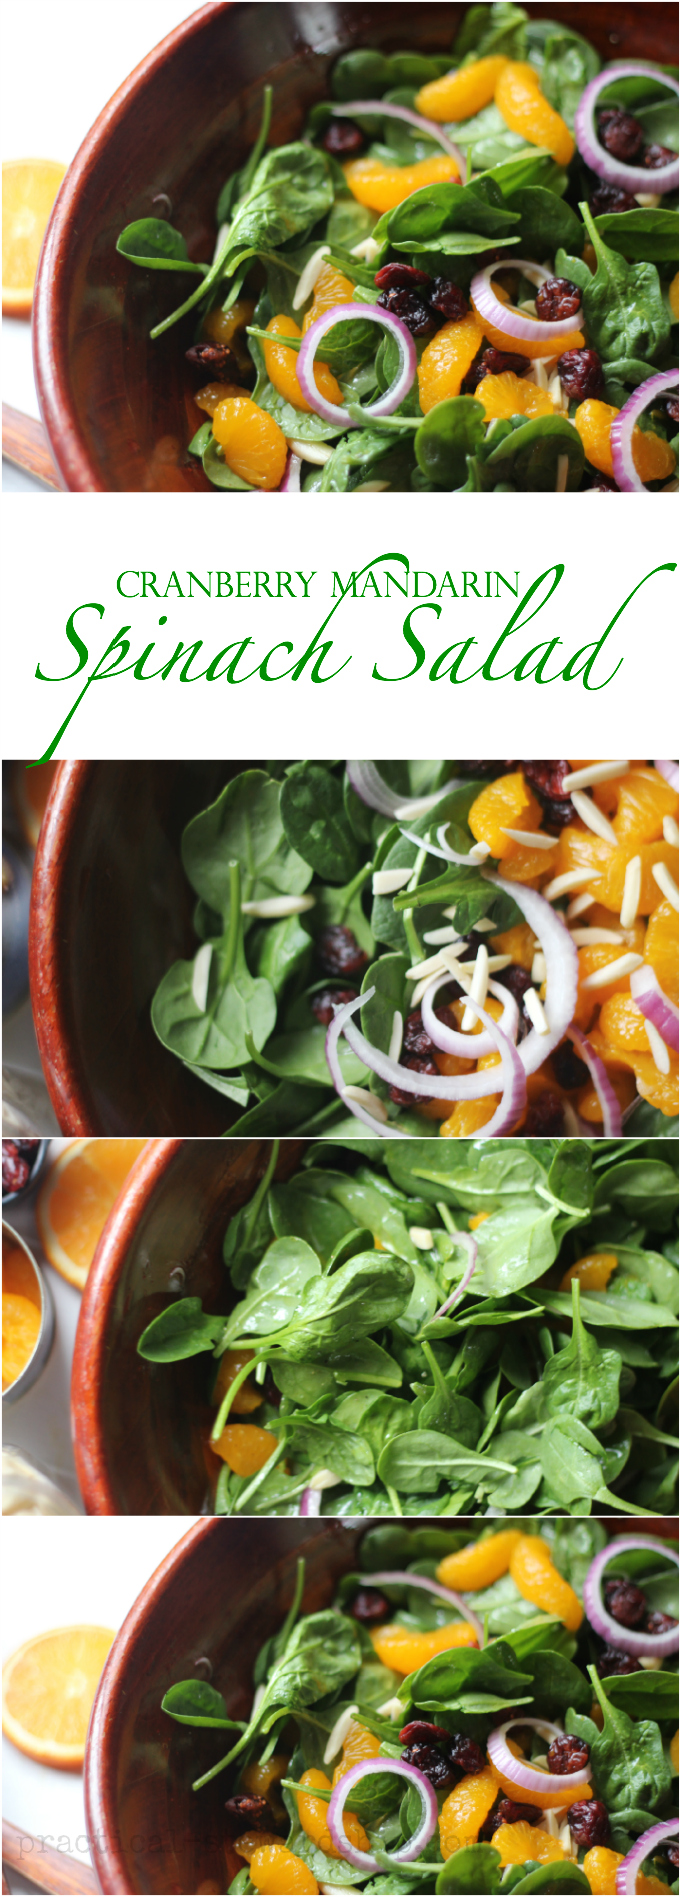 Cranberry Mandarin Spinach Salad Collage